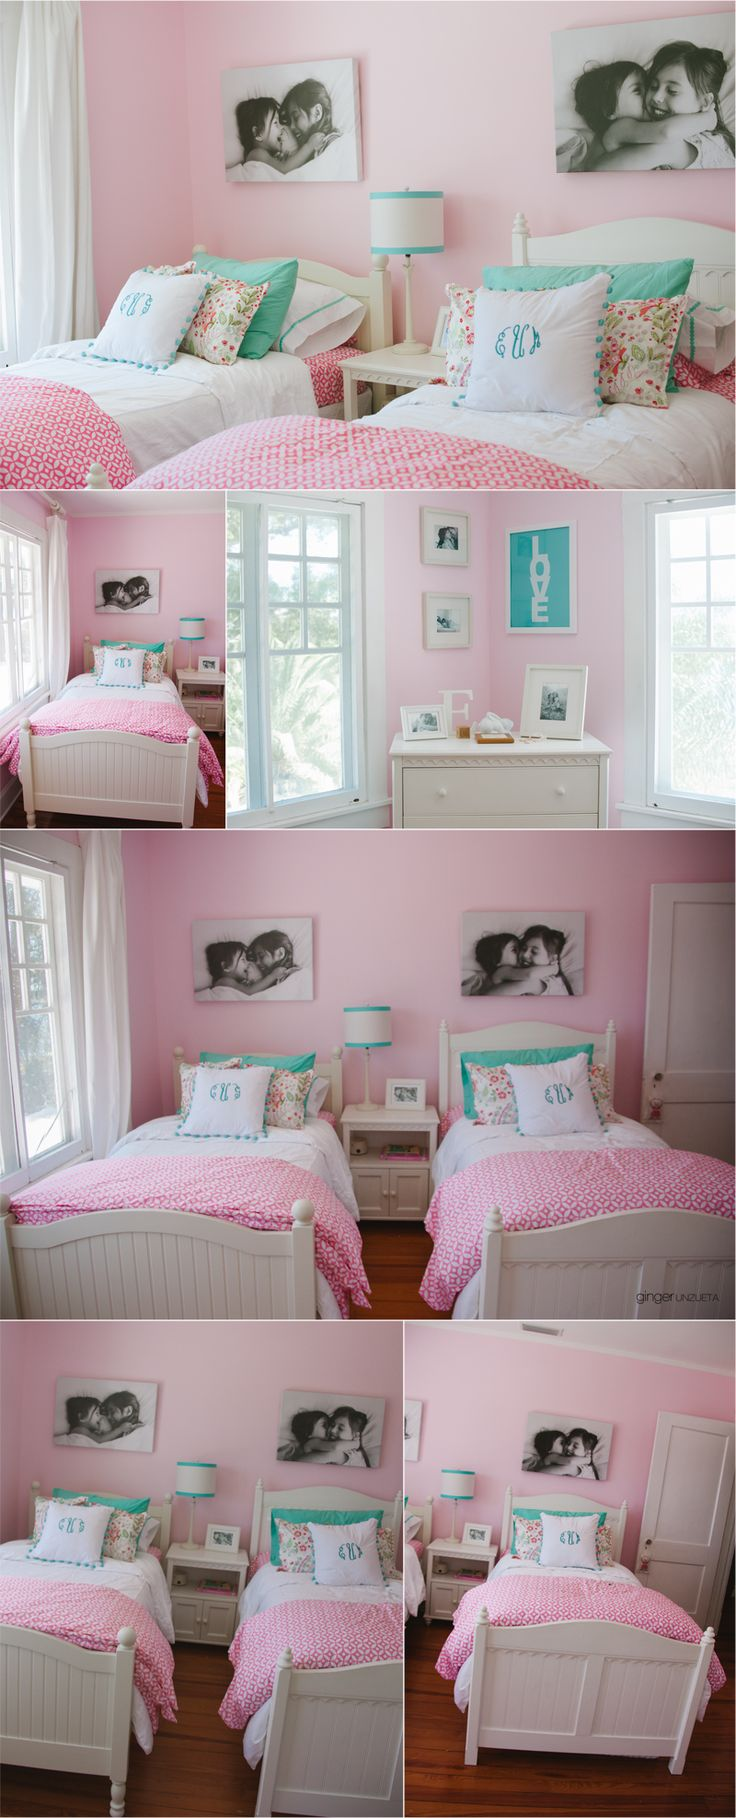 Interior design teenage girl bedroom colors - Bedroom colors for teenage girls ...